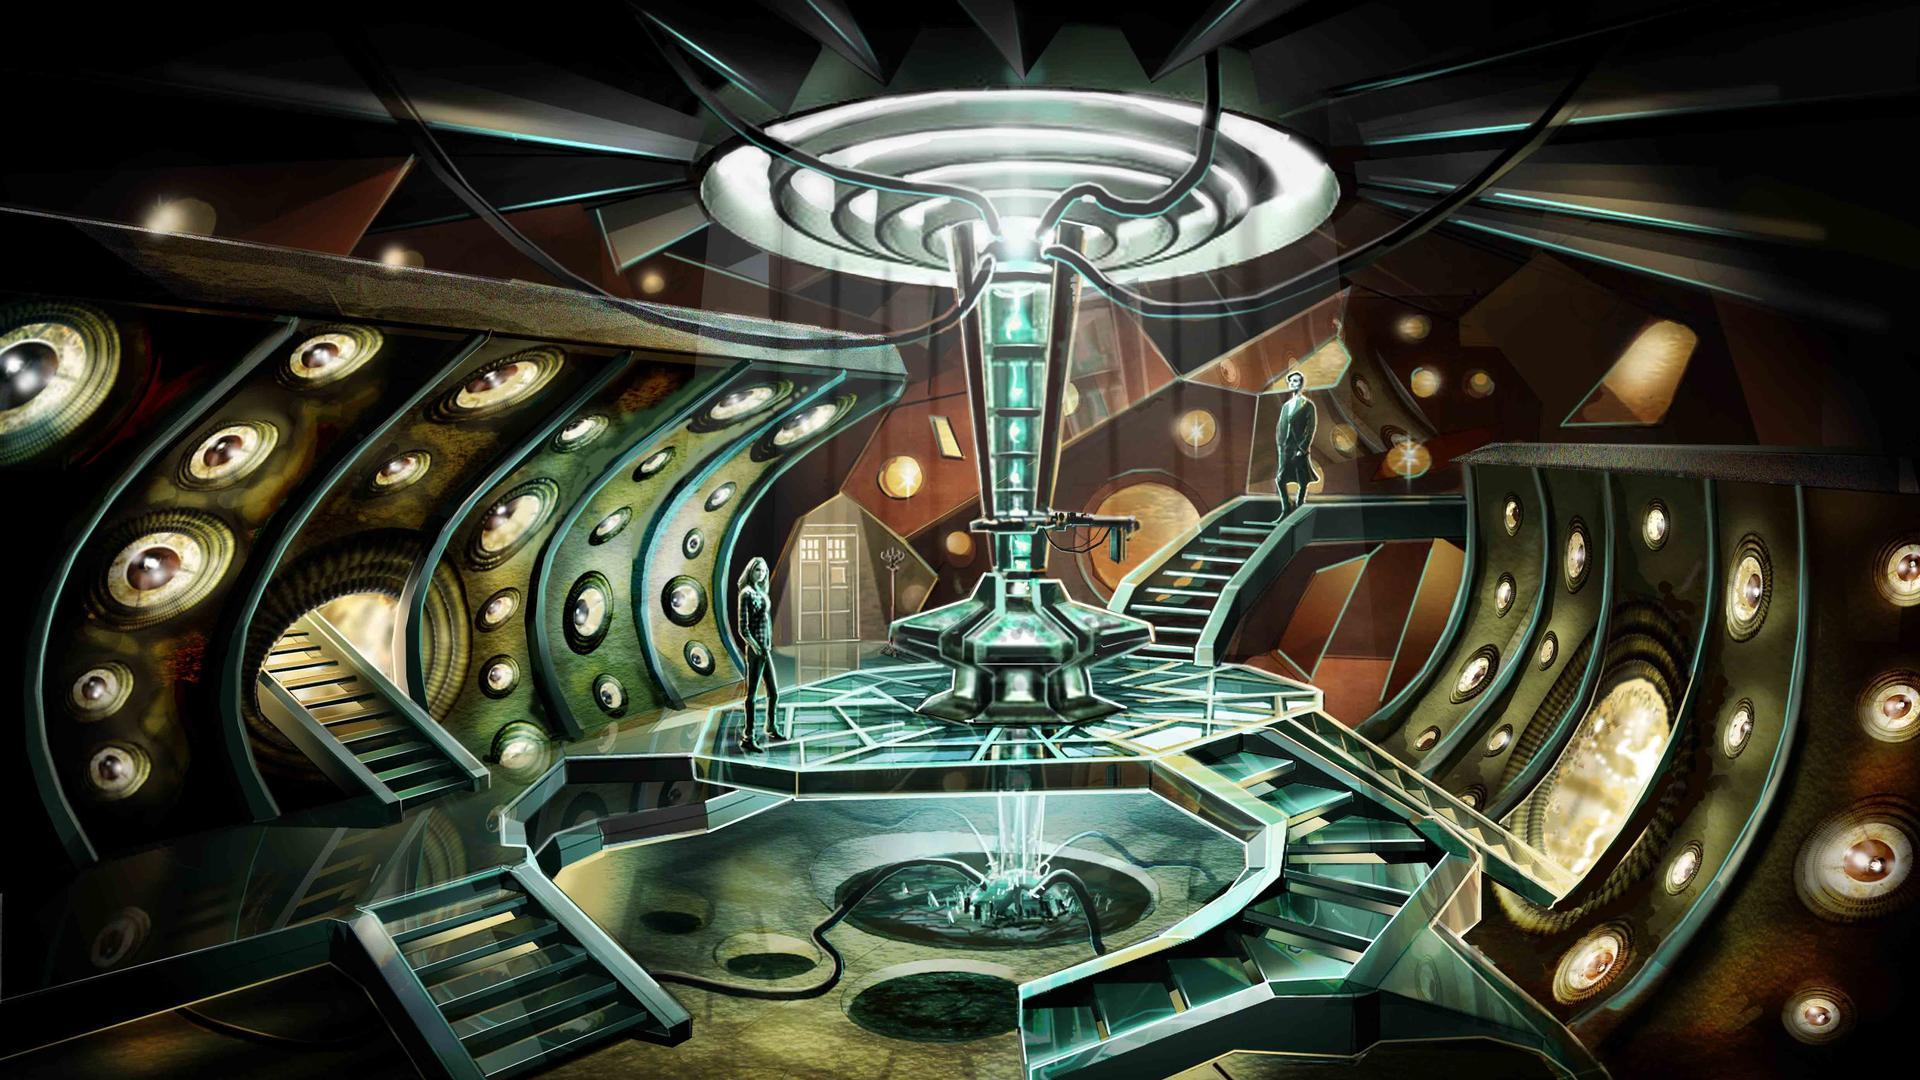 TARDIS Desktop Backgrounds  Wallpaper Cave